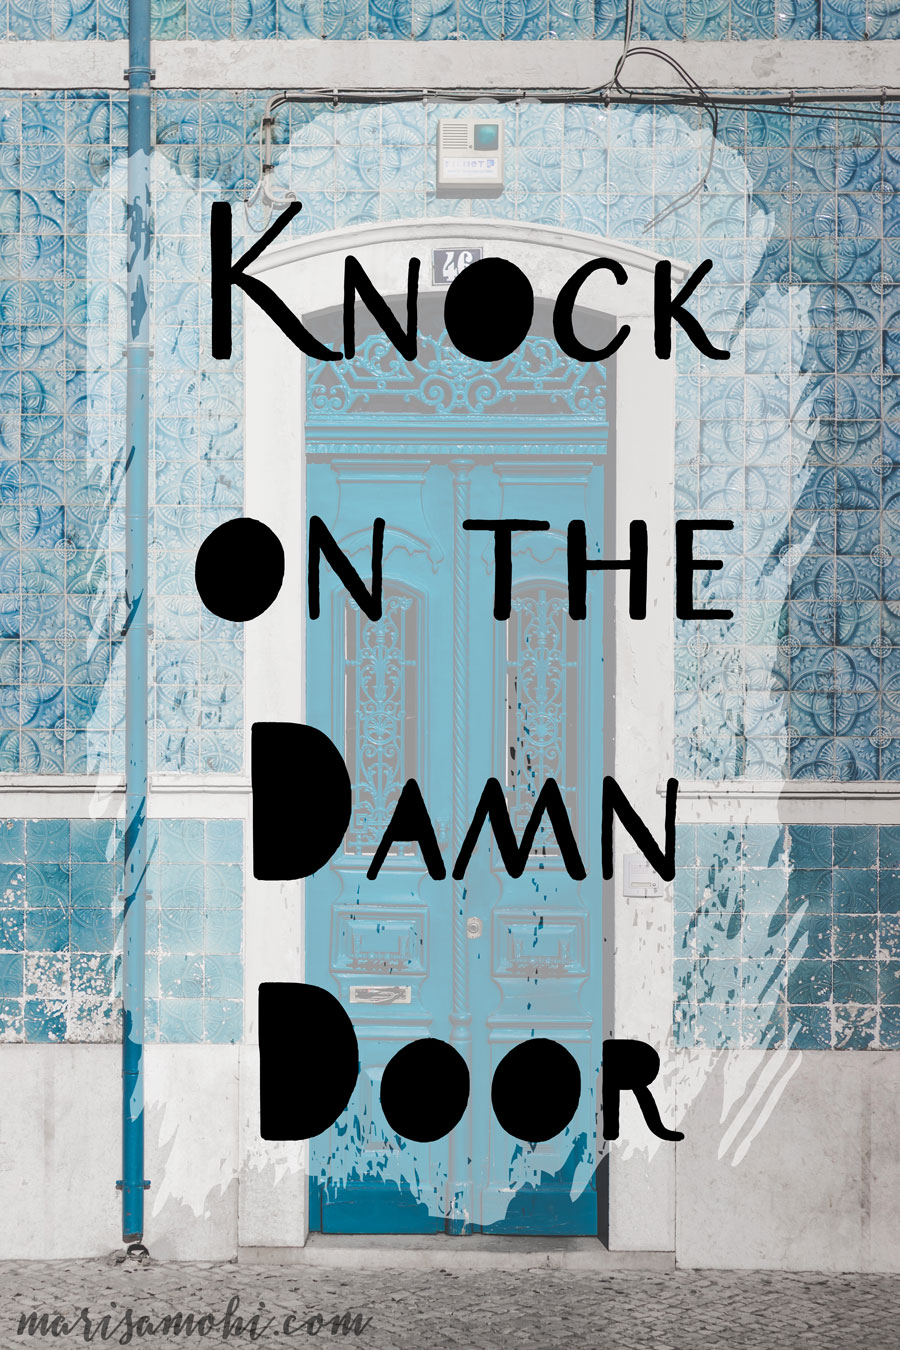 Knock on the Damn Door